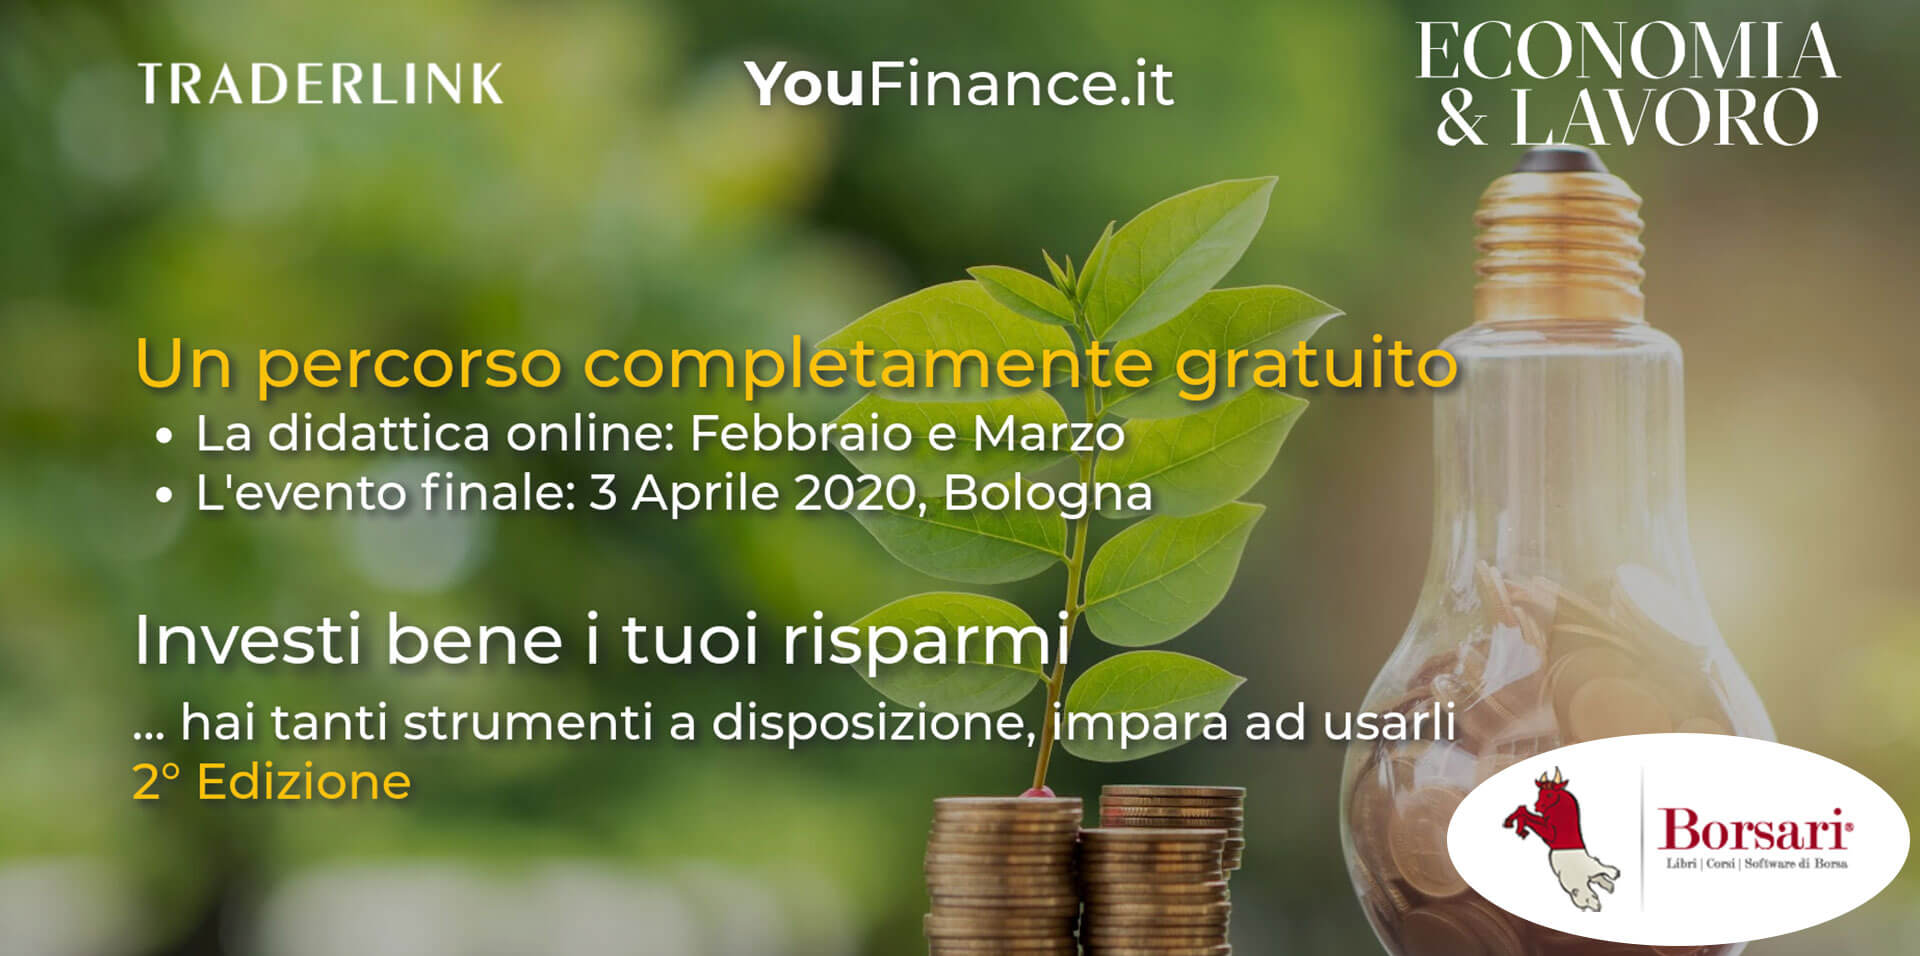 SlideHomePage_YOURFINANCE